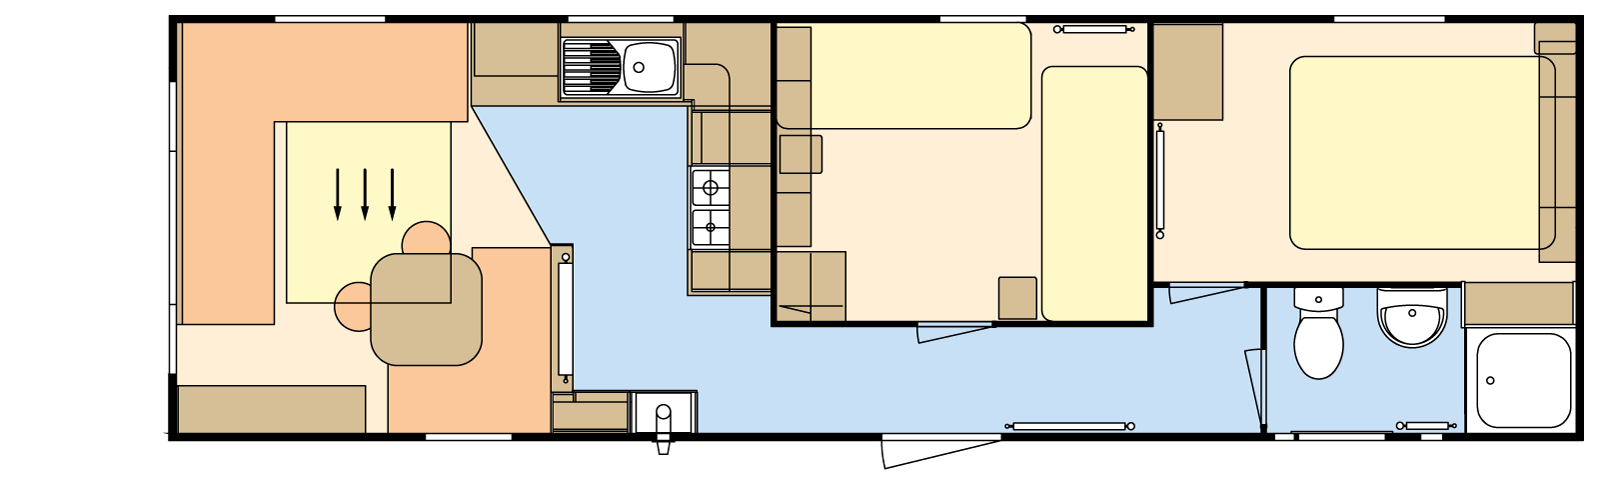 32 × 10 – 2 bedroom/6 berth